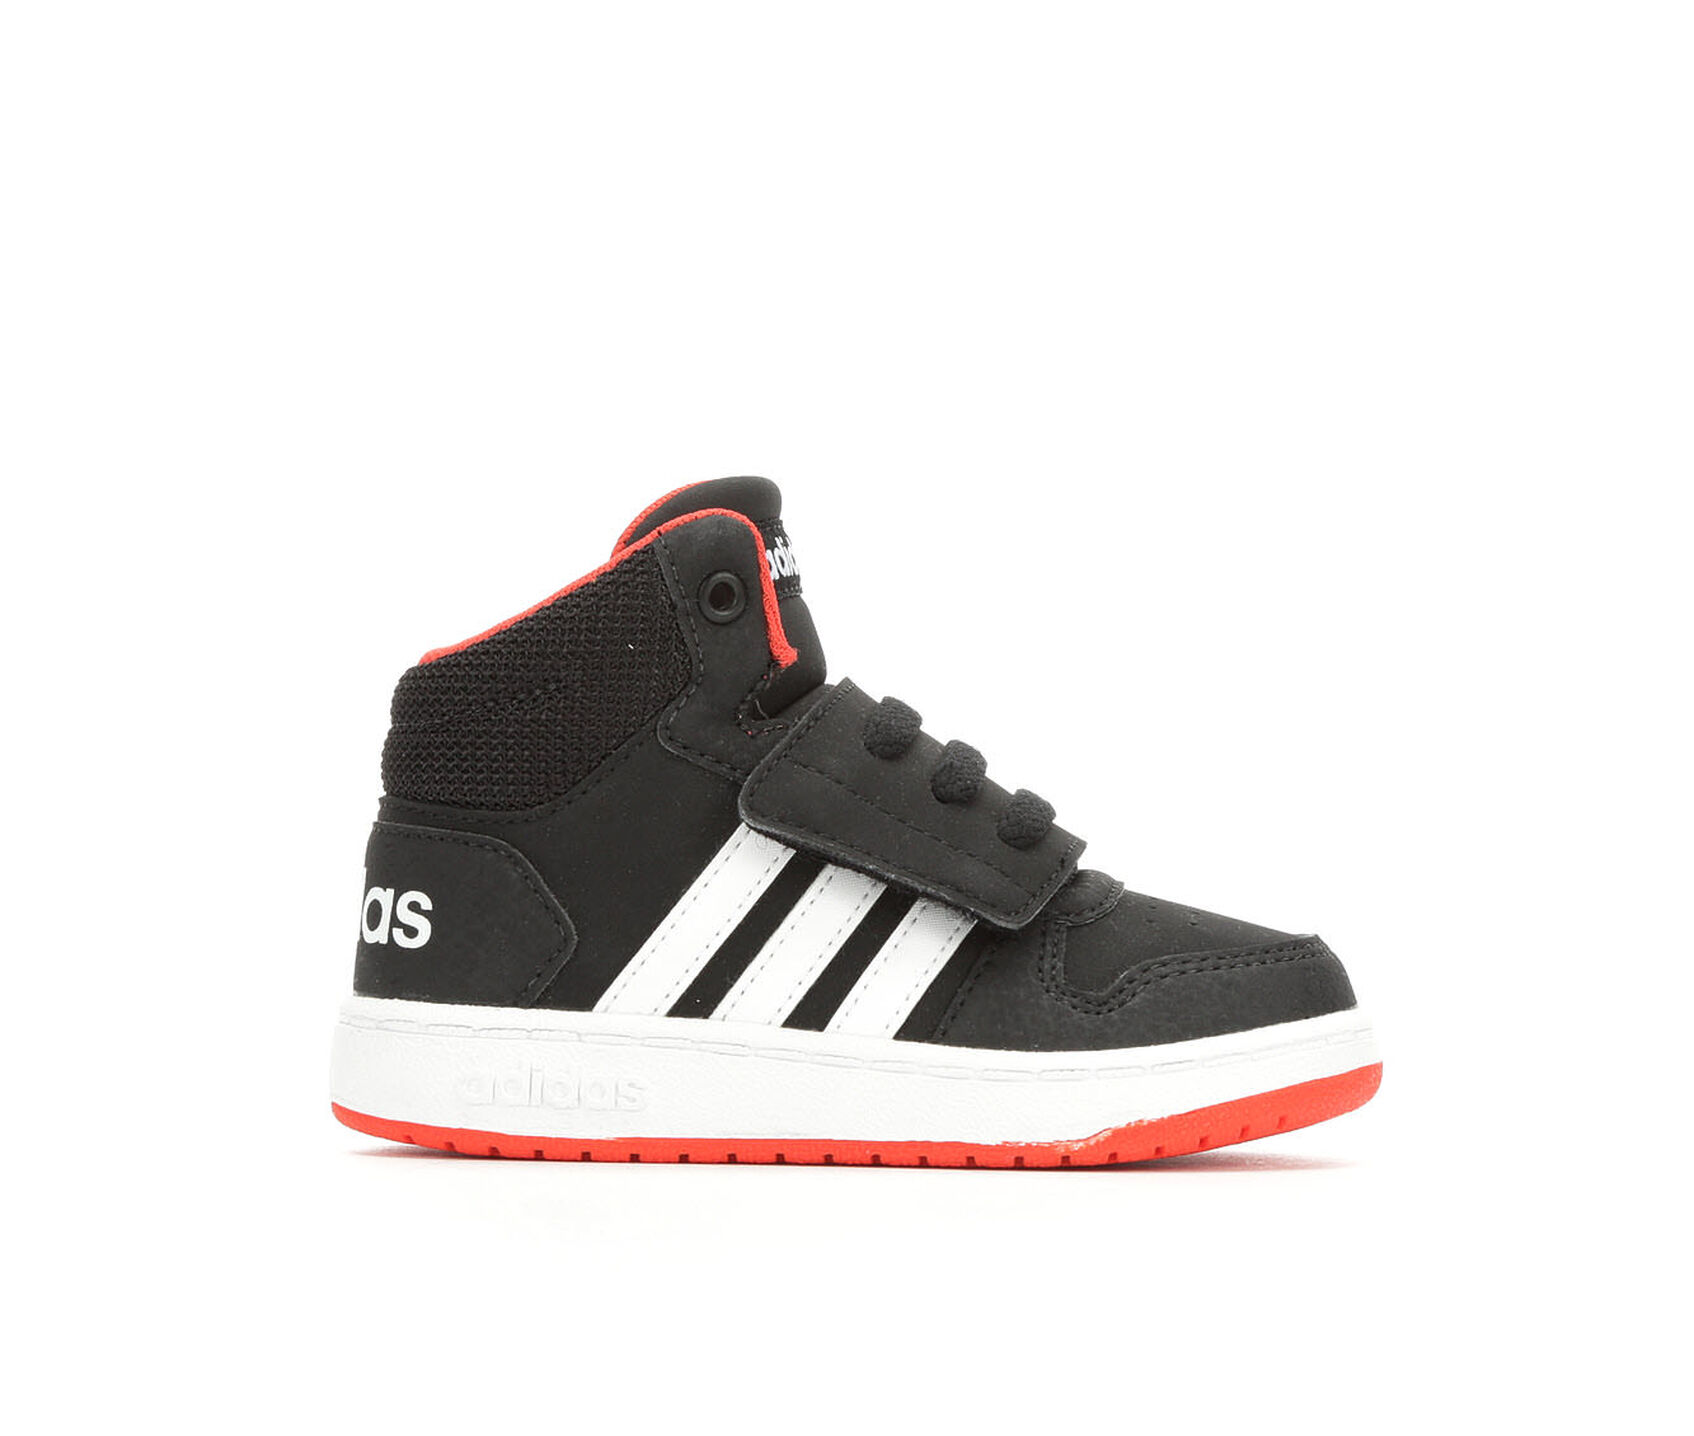 545447aa18d Boys  Adidas Infant   Toddler Hoops Mid Basketball Sneakers